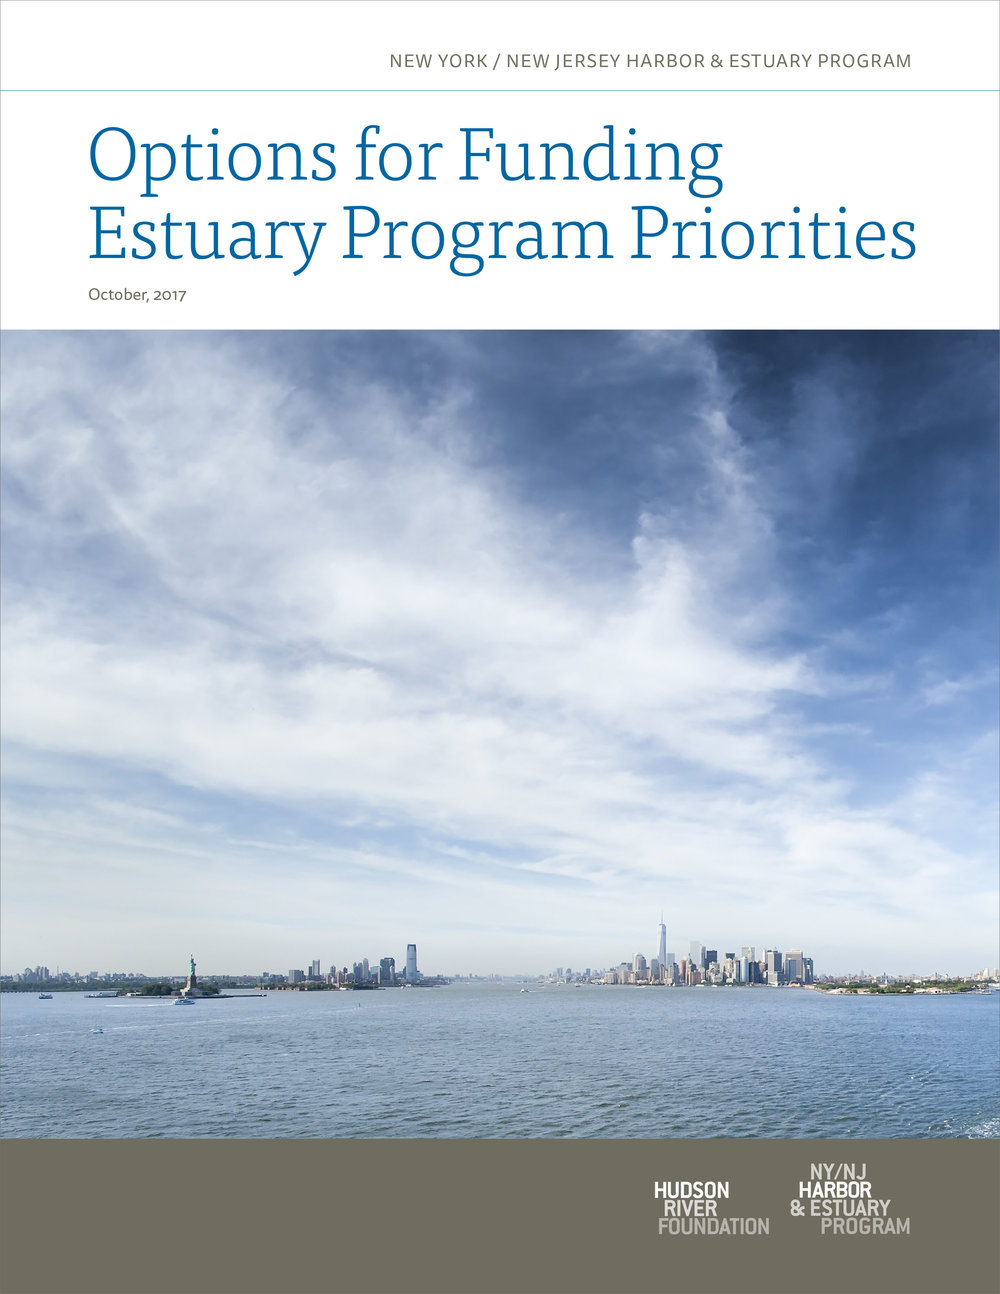 Options for Funding Estuary Program Priorities